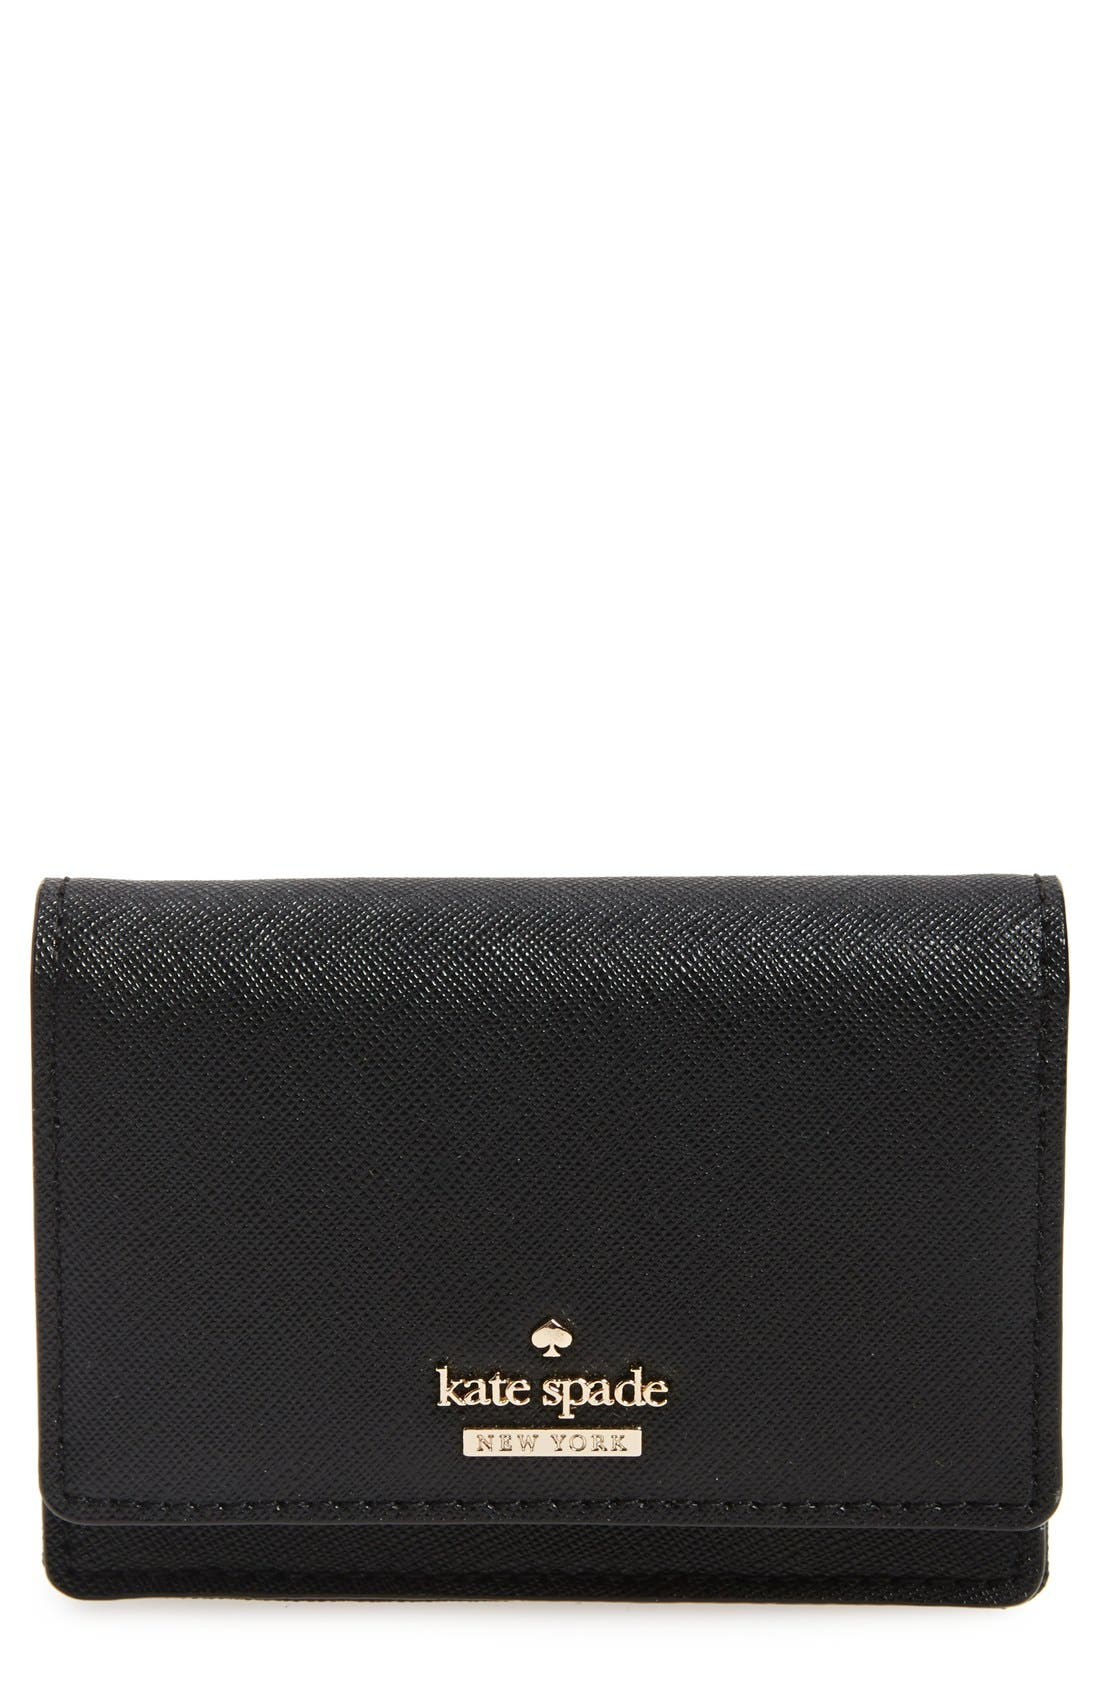 Main Image - kate spade new york 'cameron street - beca' textured leather wallet